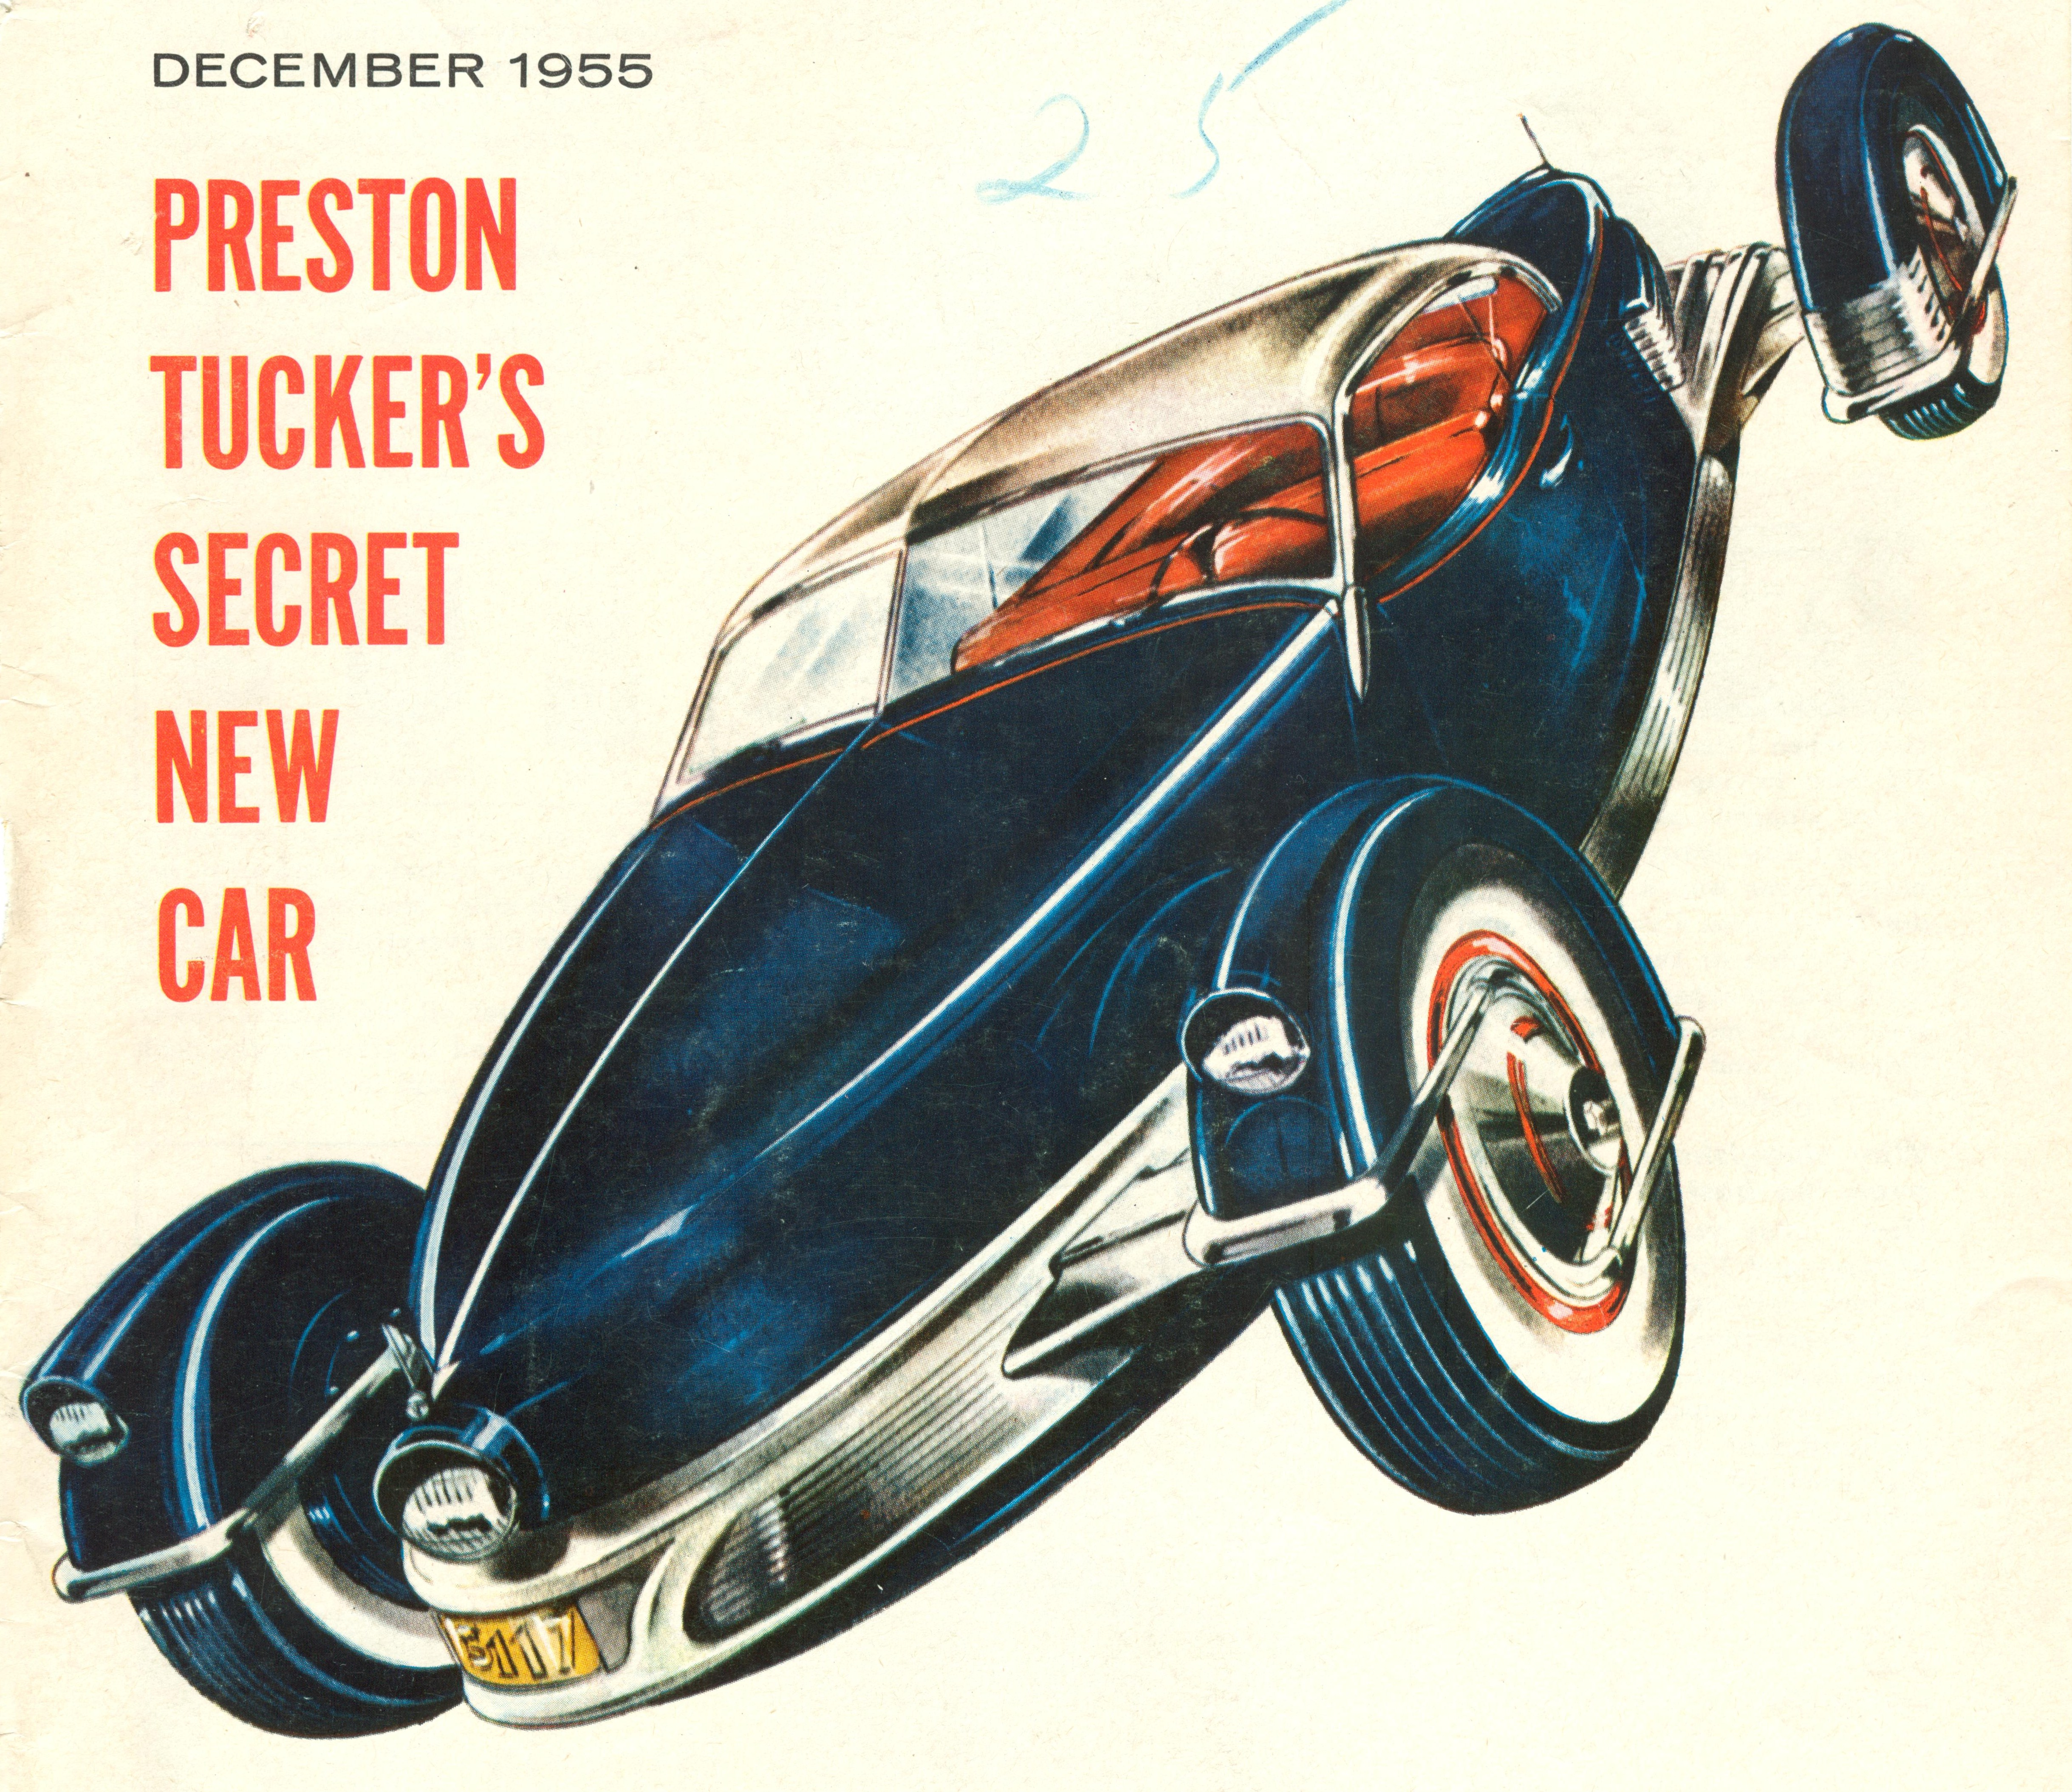 Preston Tucker Wikipedia Electrical Wiring Diagram For 1941 1948 Studebaker All Trucks Tuckers Secret New Car Cover Of 1955 Magazine Story About The Carioca Was Quoted In Article I Never Gave Up Will